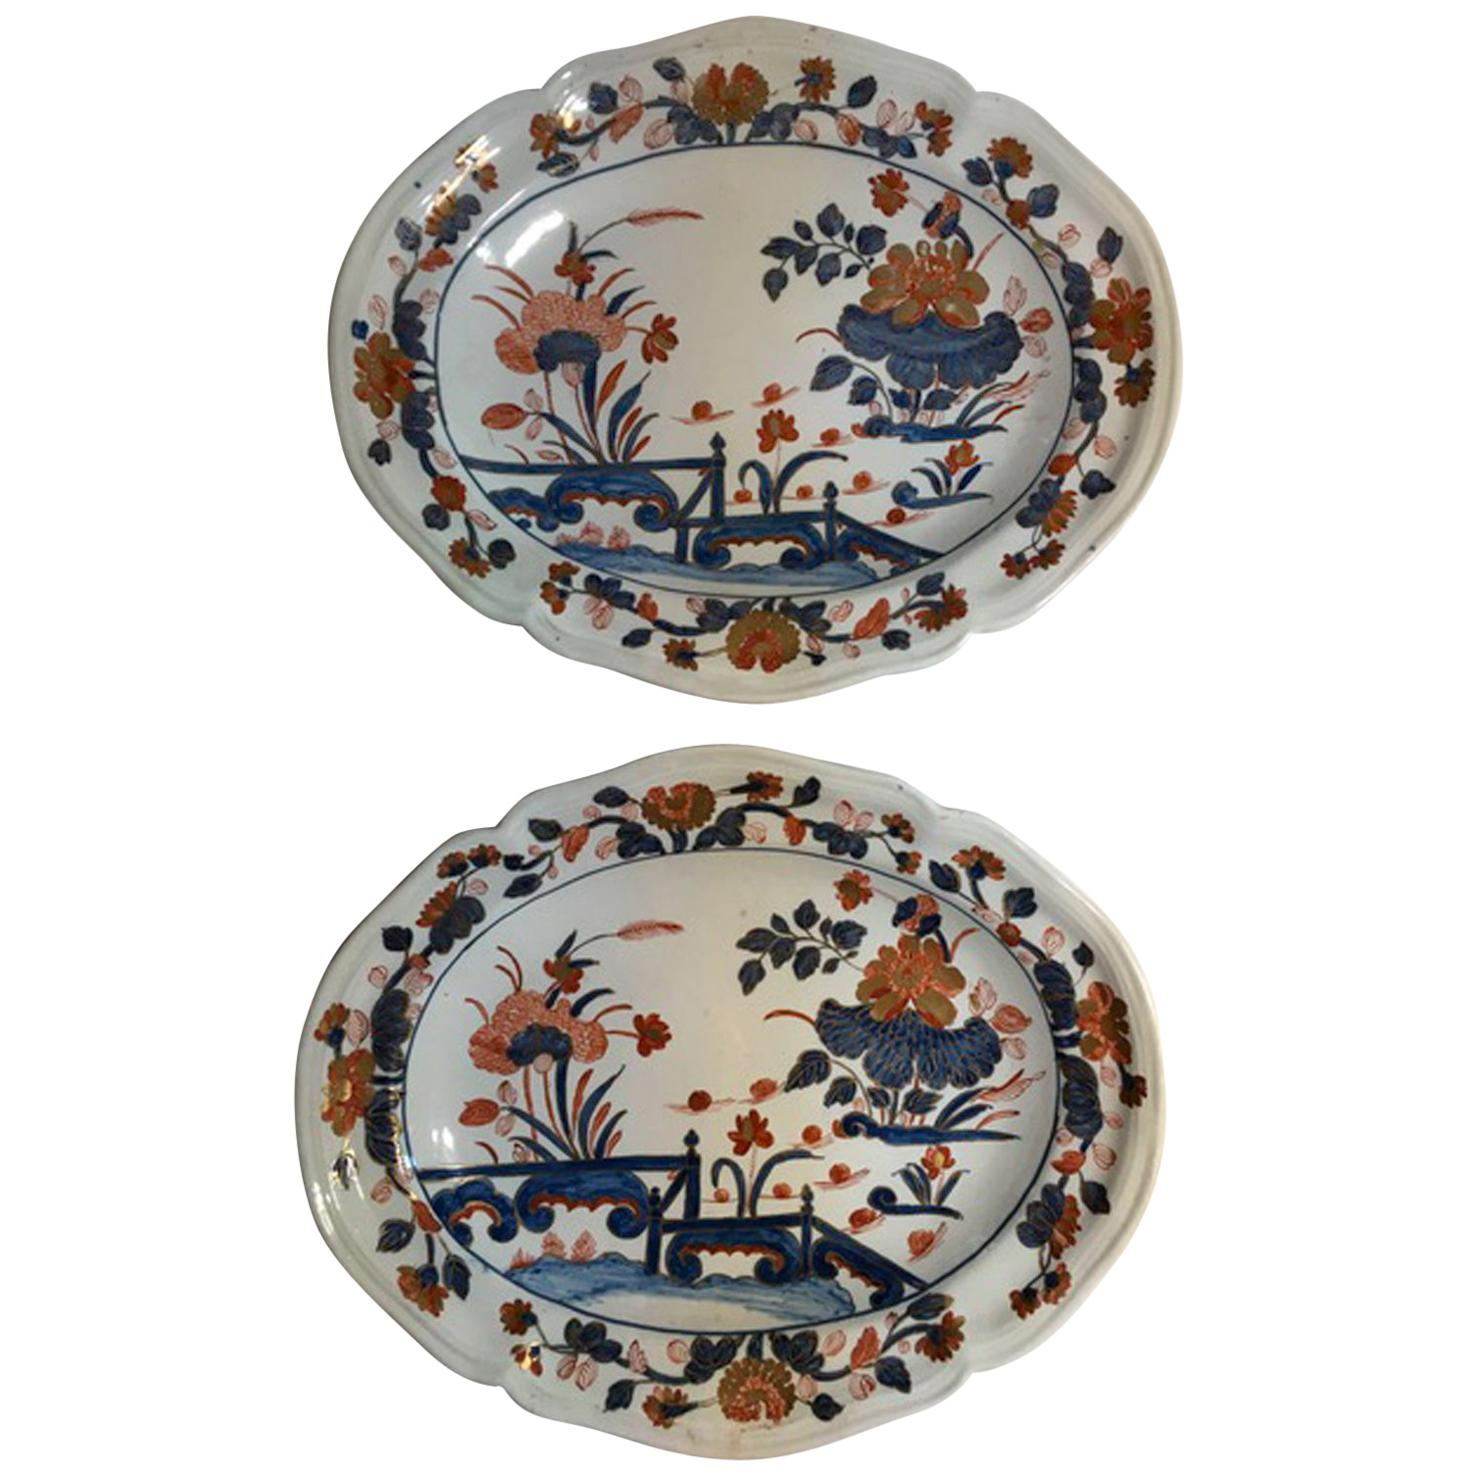 Italy Richard Ginori Mid-18th Century Pair of Porcelain Trays or Serving Dishes